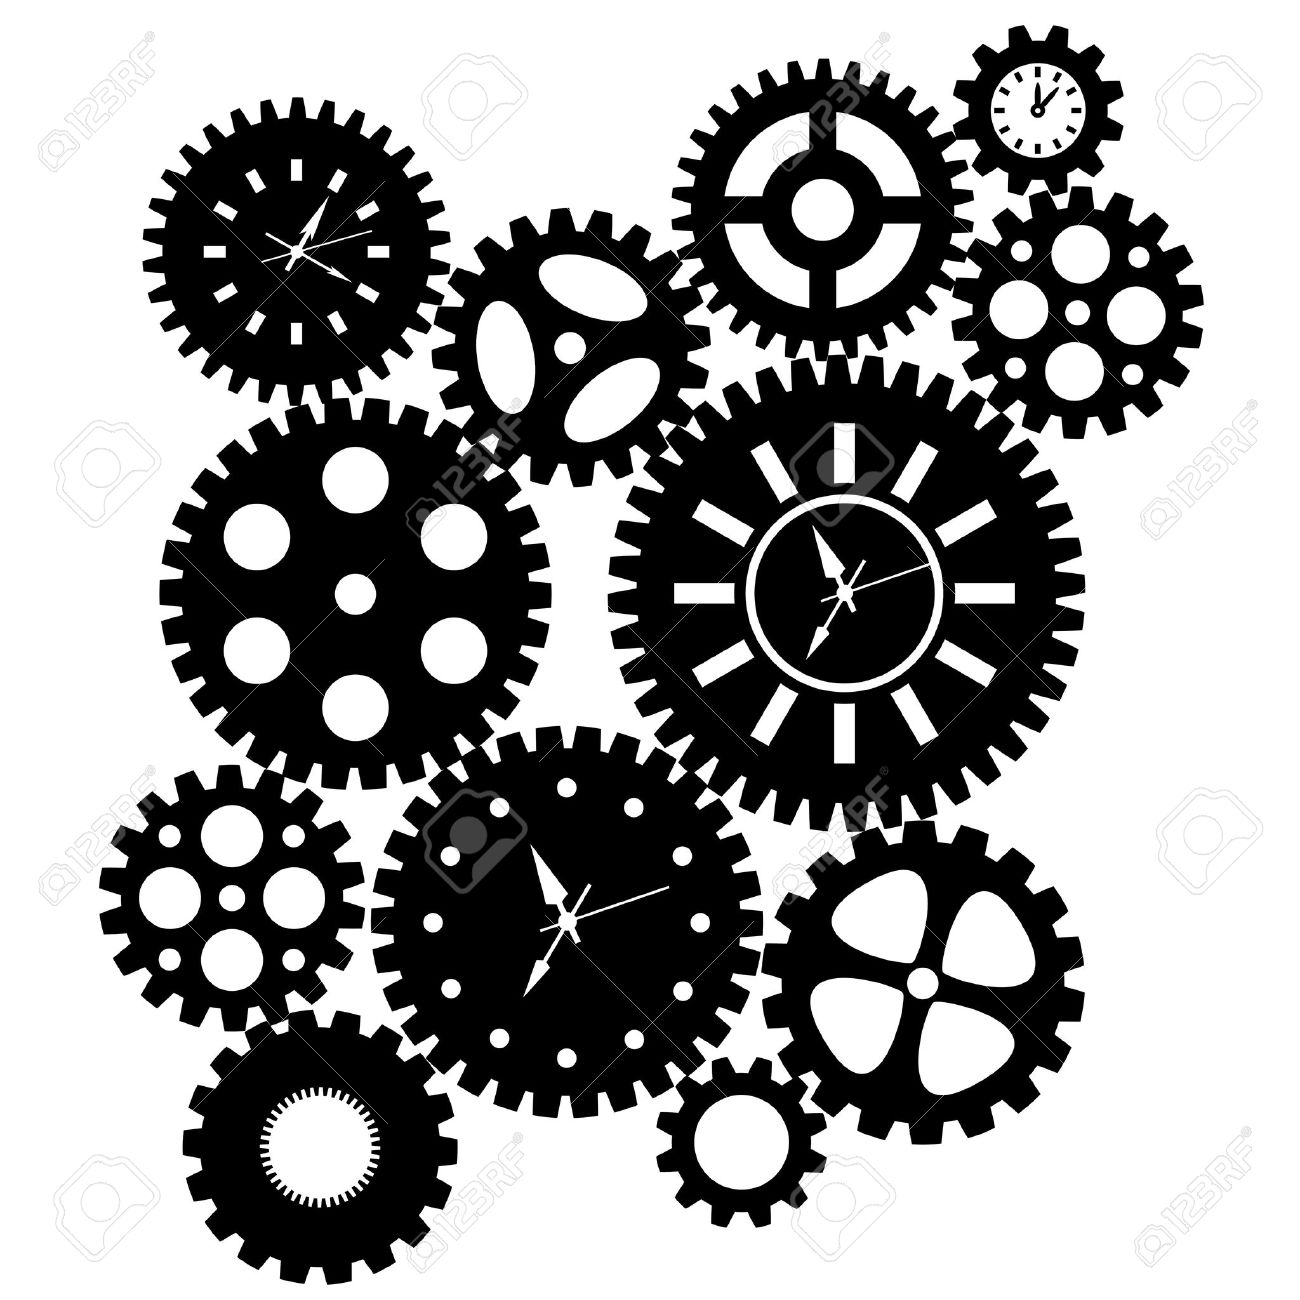 Gears clipart #10, Download drawings